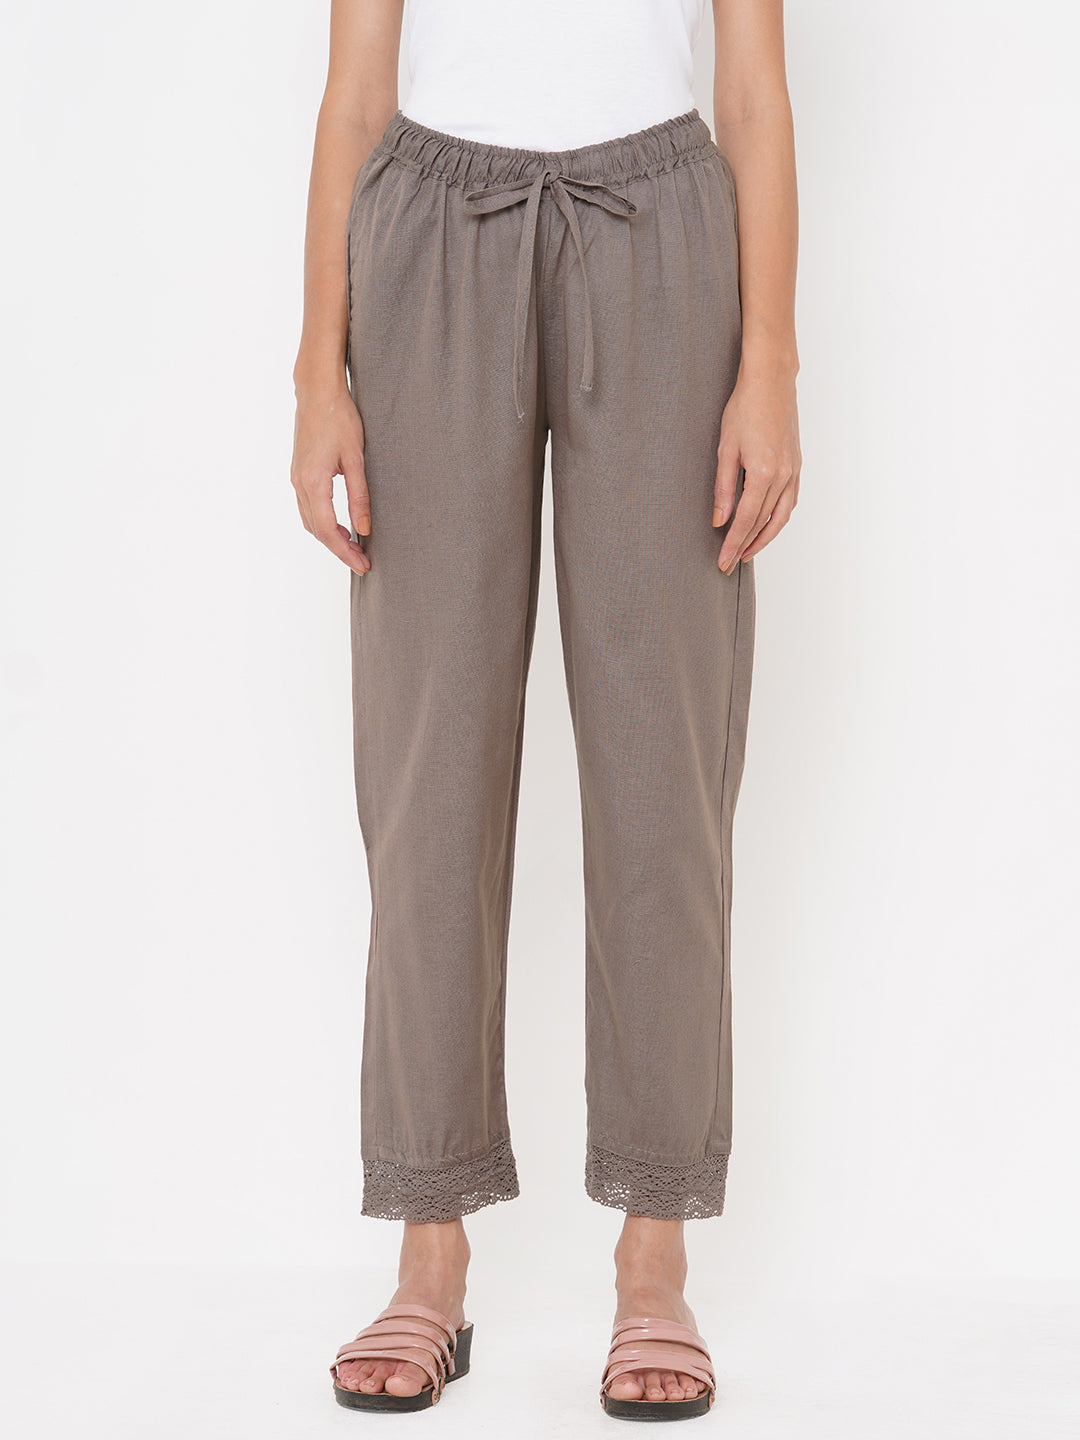 Slub Woven Solid Cotton Pant - Greyish Brown